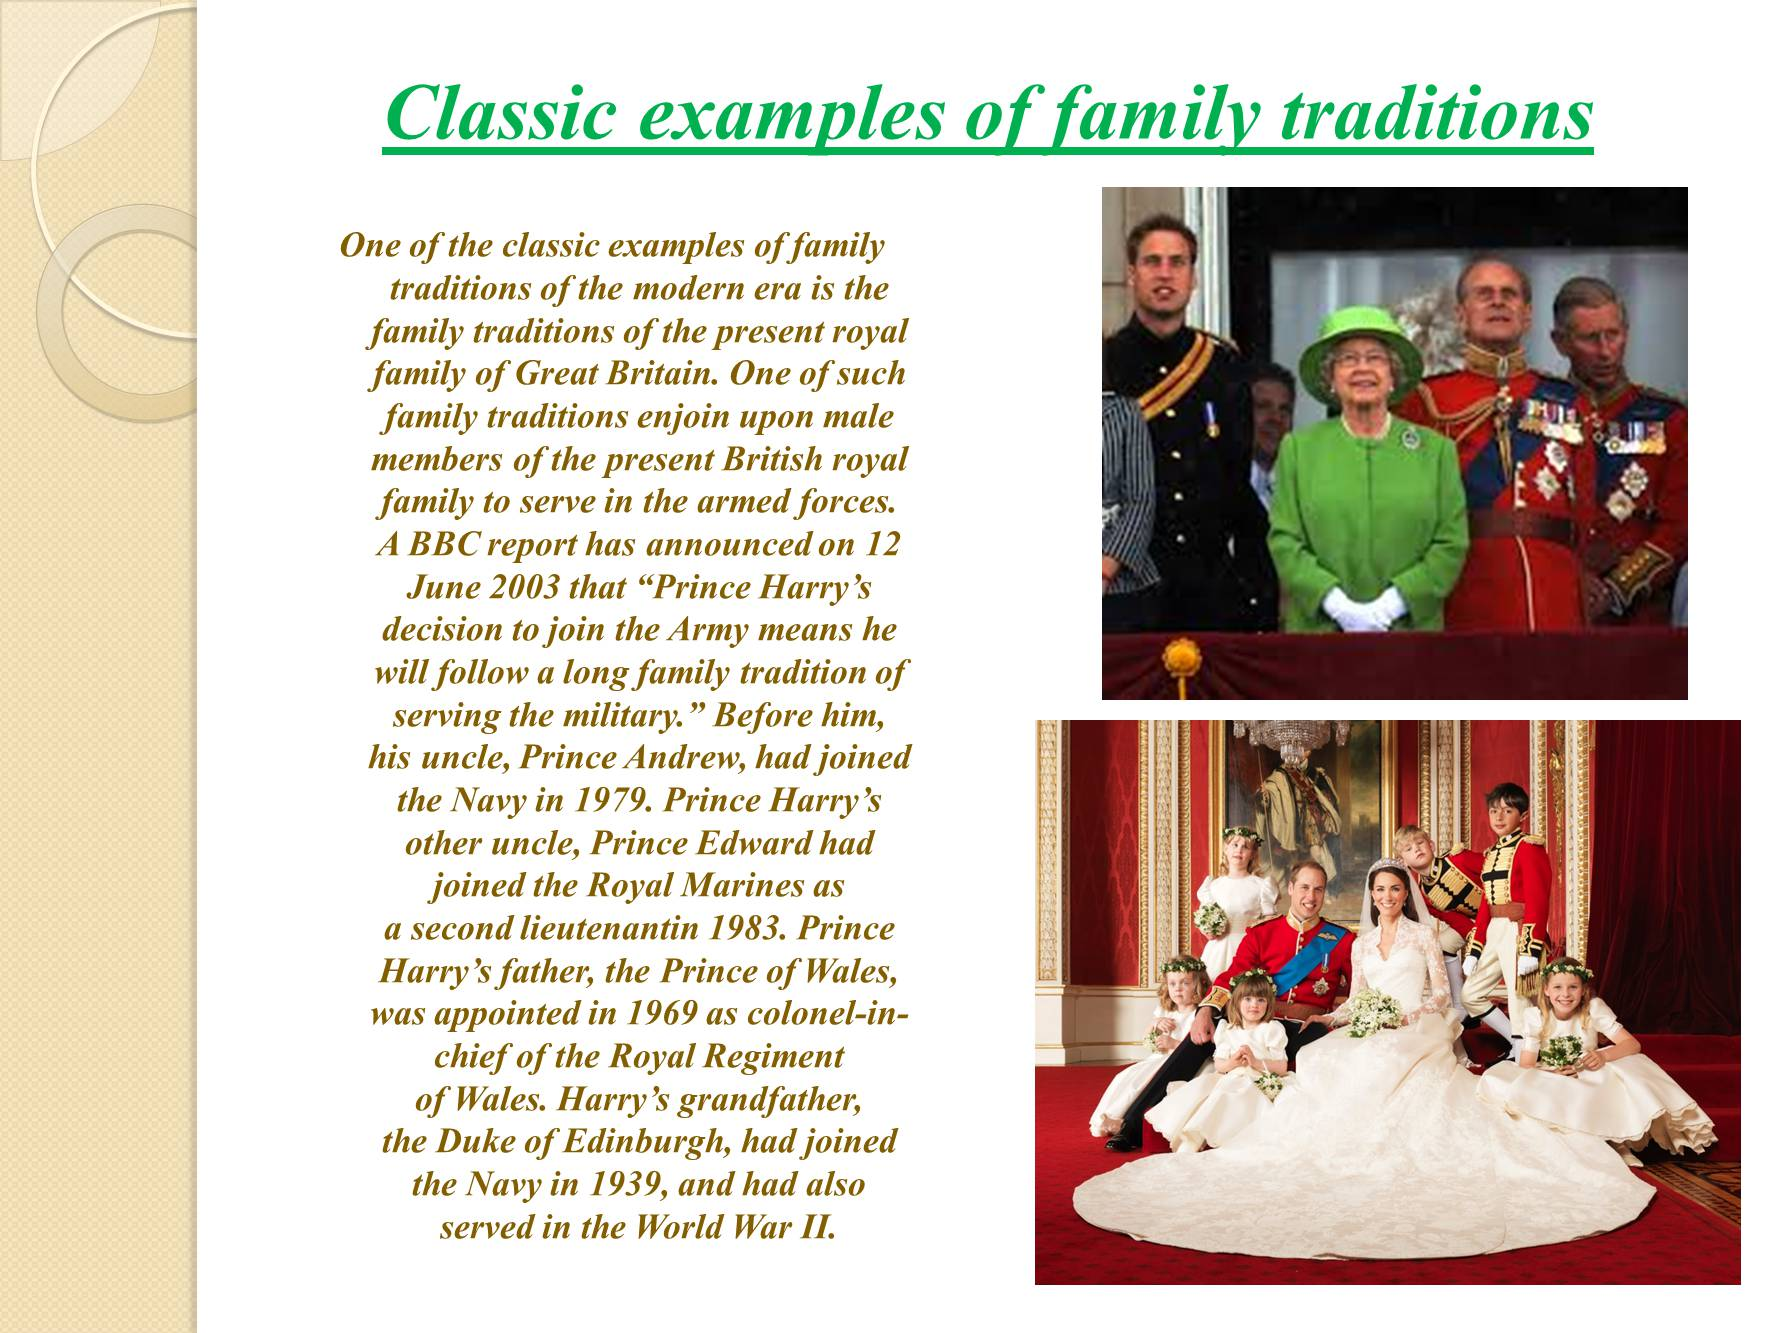 family culture and traditions essay Many families have important traditions that family members share what is one of your family's important traditions use specific reasons and details to support your response.